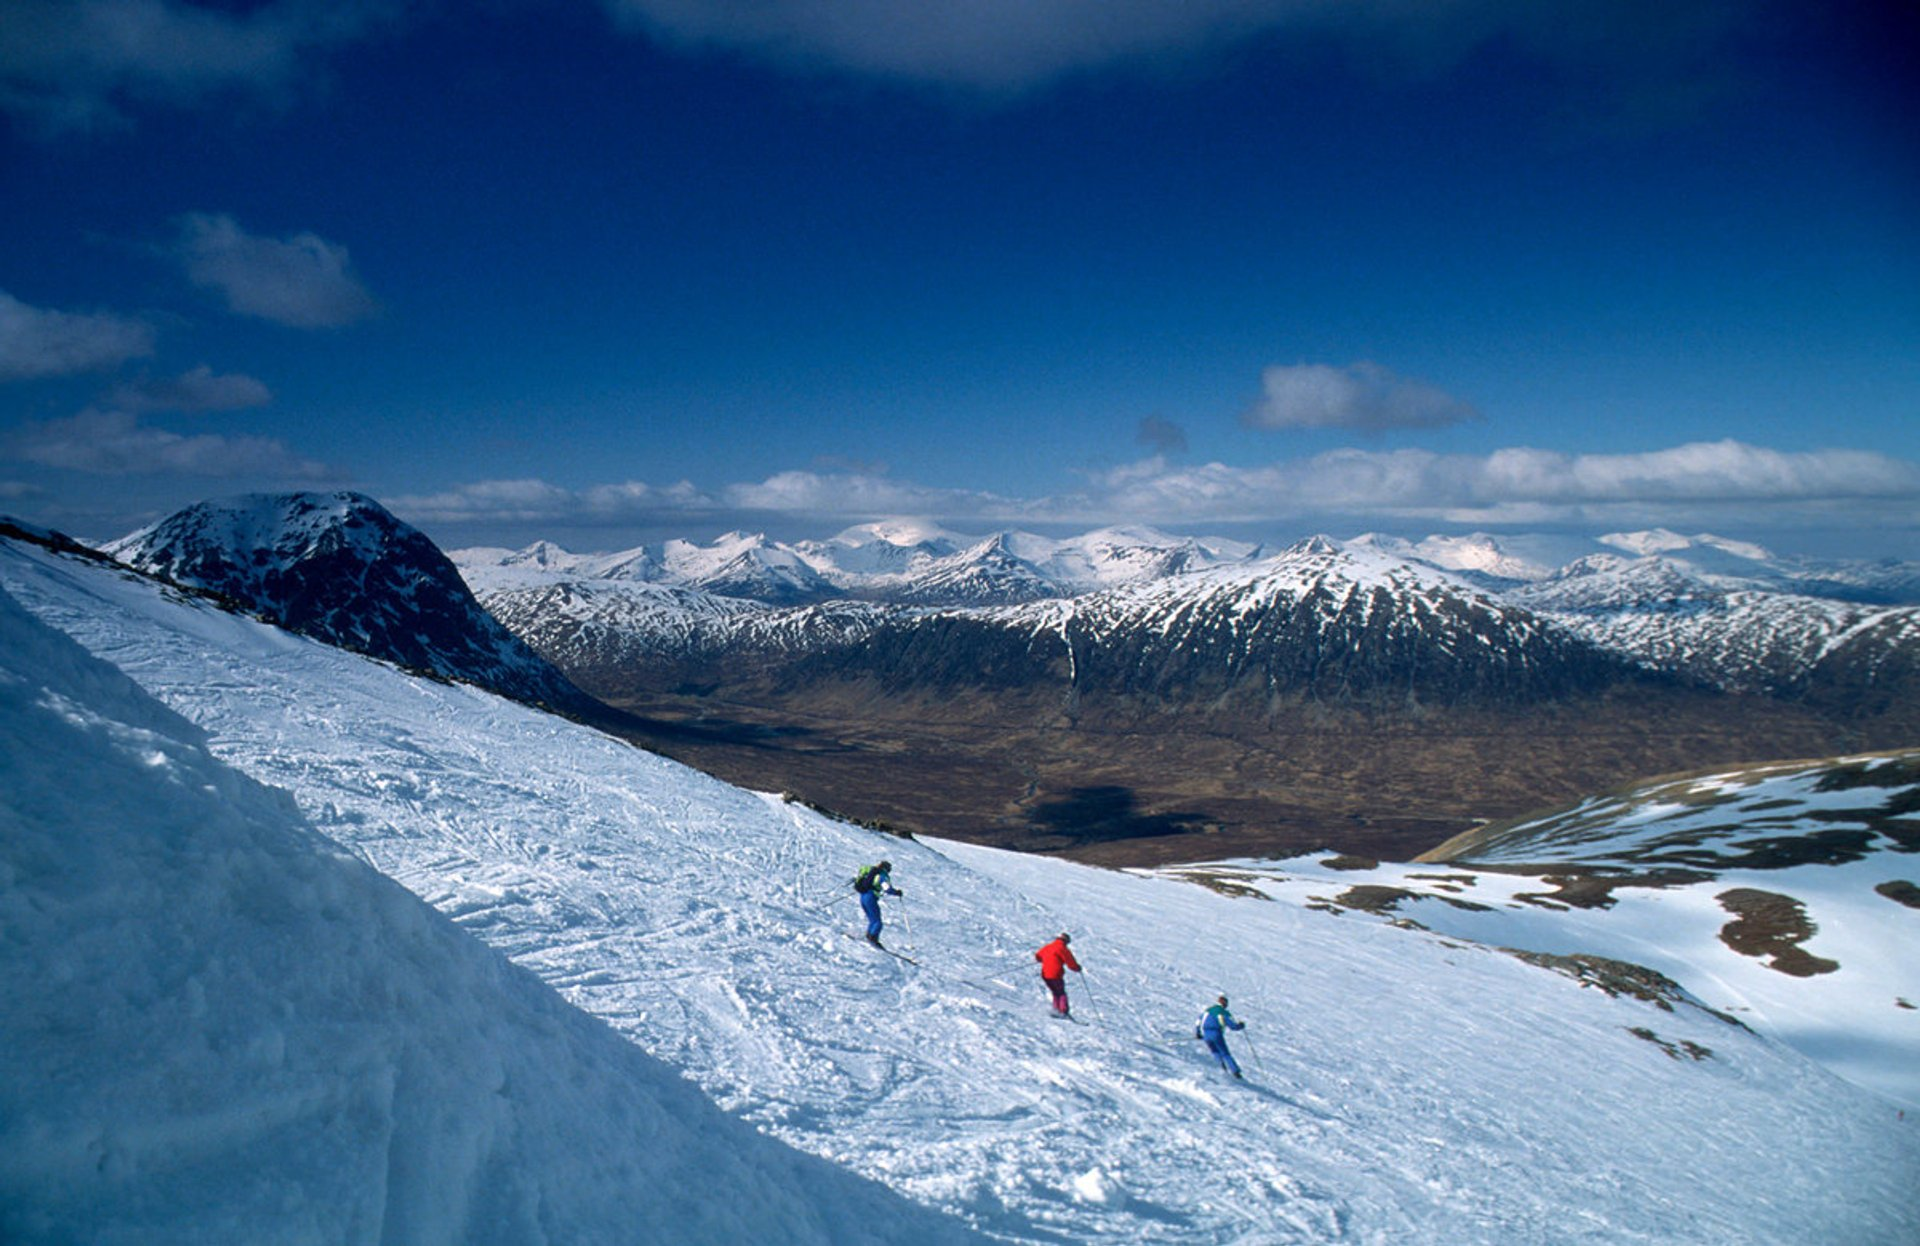 Skiers on their descent of one of the ski runs at the Glencoe Ski Centre with the mountains of Ben Nevis, Grey Corries and the Mamores beyond, Highland 2019